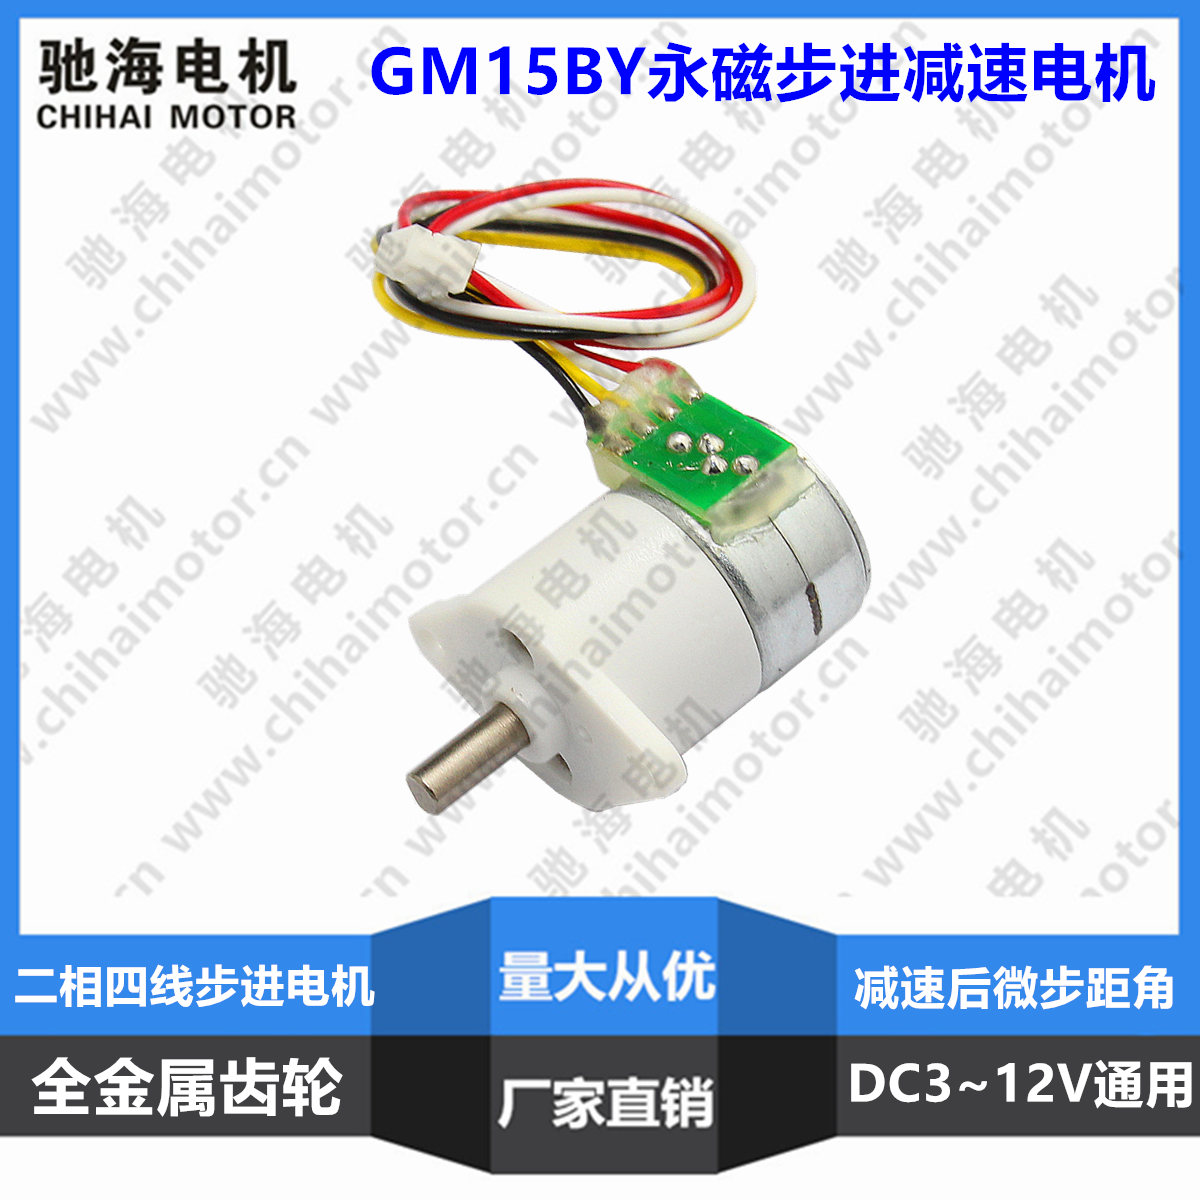 Diameter 15mm, GM12-15BY Micro Stepping Motor, 2 Phase 4 Wire Monitor, Pan Head home furnishings keyence keyence ultrasonic controller fw v20 spot